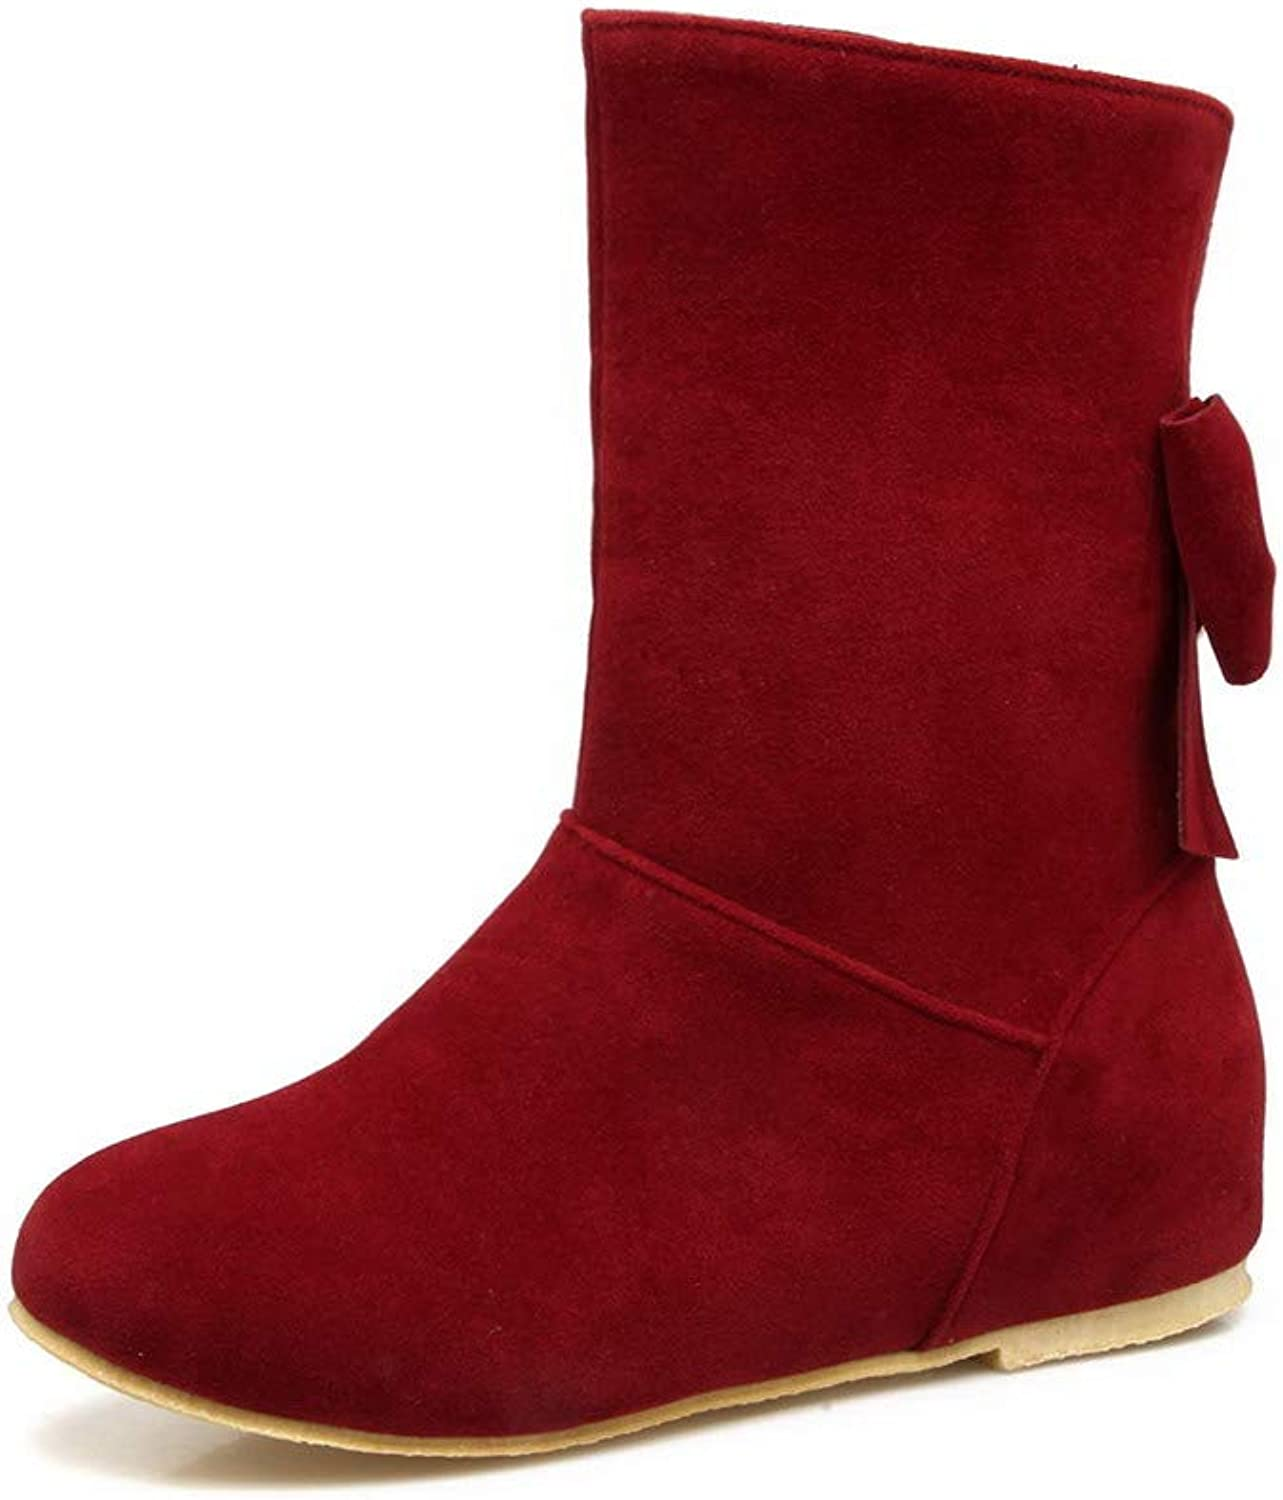 AmoonyFashion Women's Frosted Closed-Toe Solid Mid-Calf Low-Heels Boots, BUTXT021238